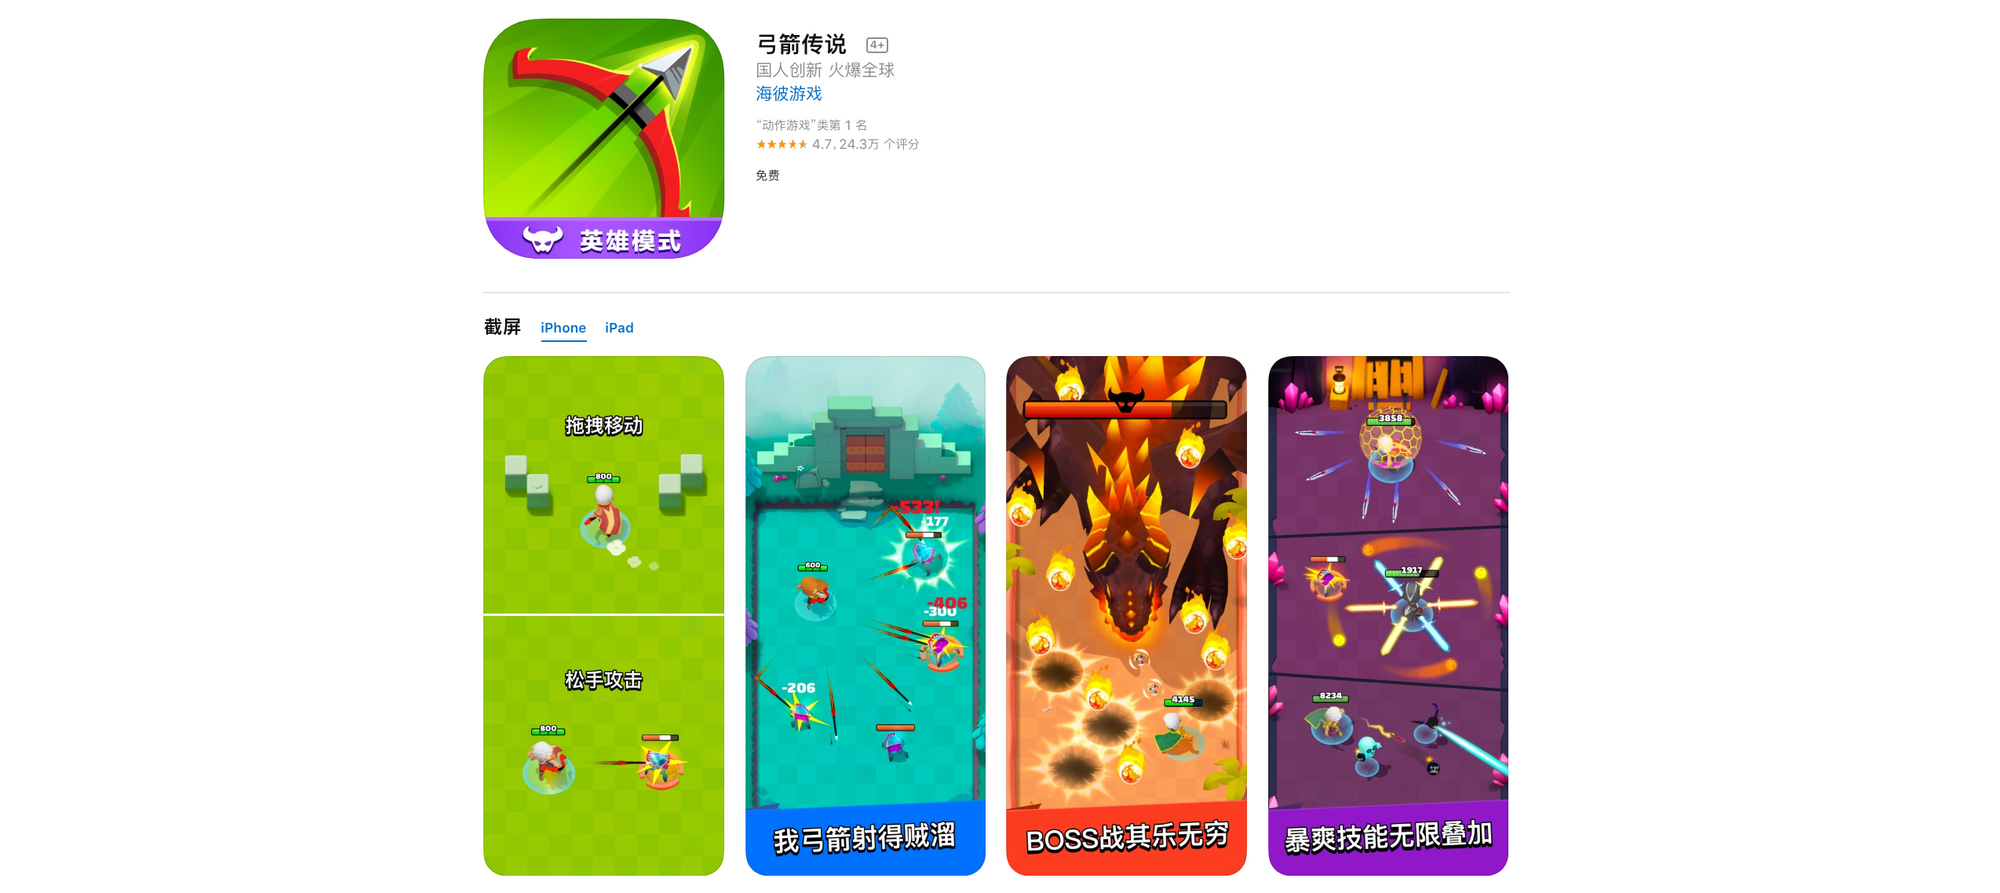 Game profile on App Store